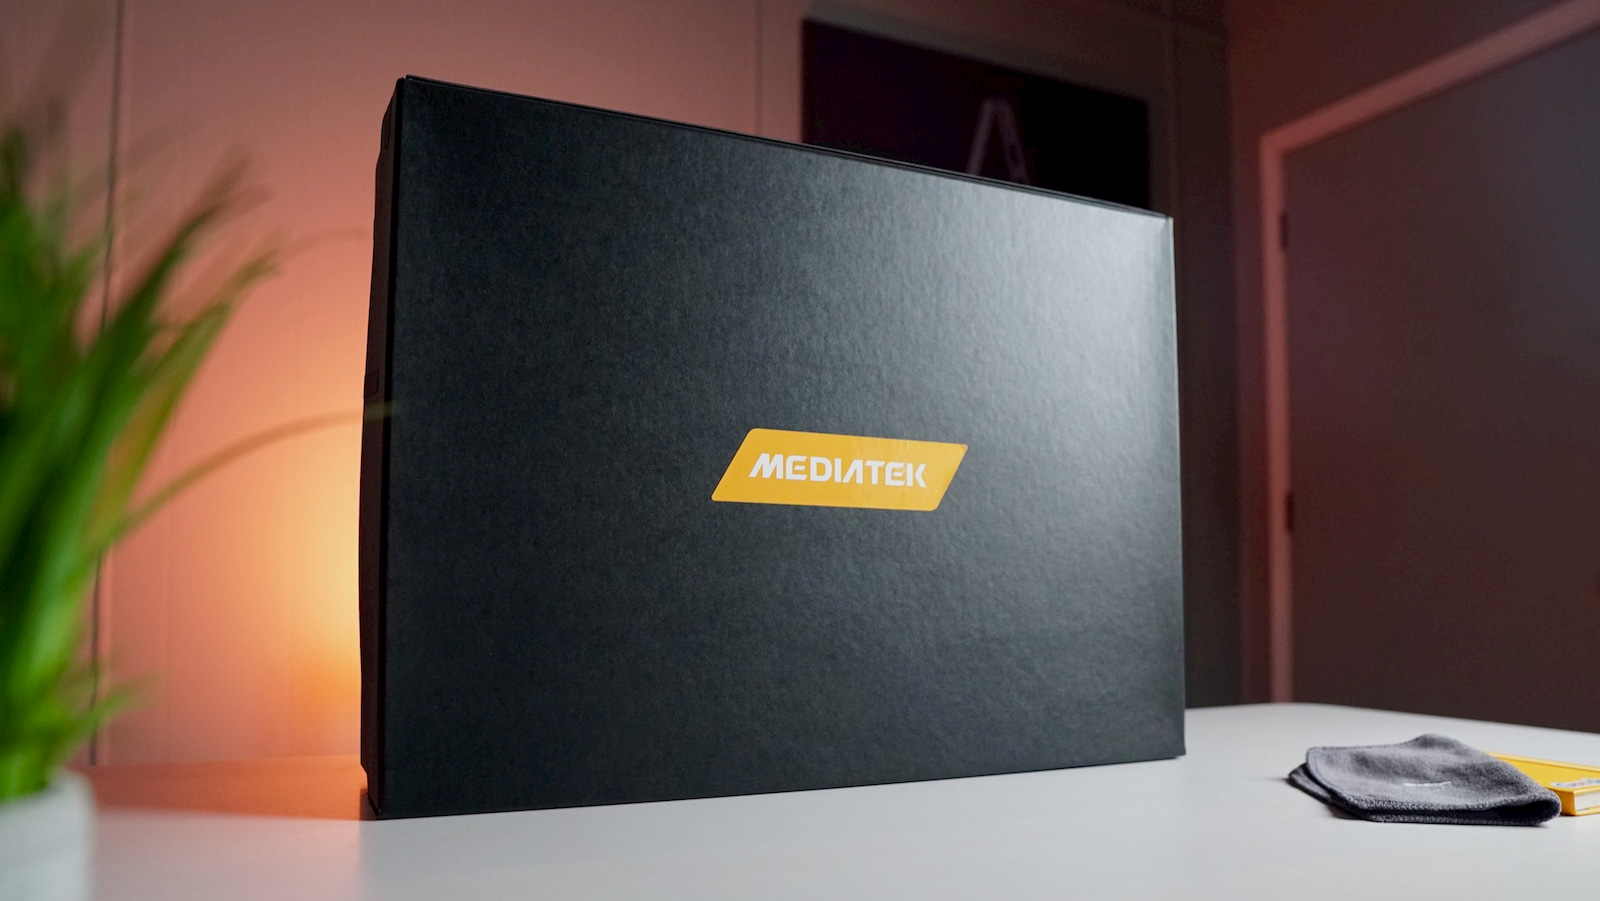 Unboxing the MediaTek Summit 2020 surprise box [Giveaway]